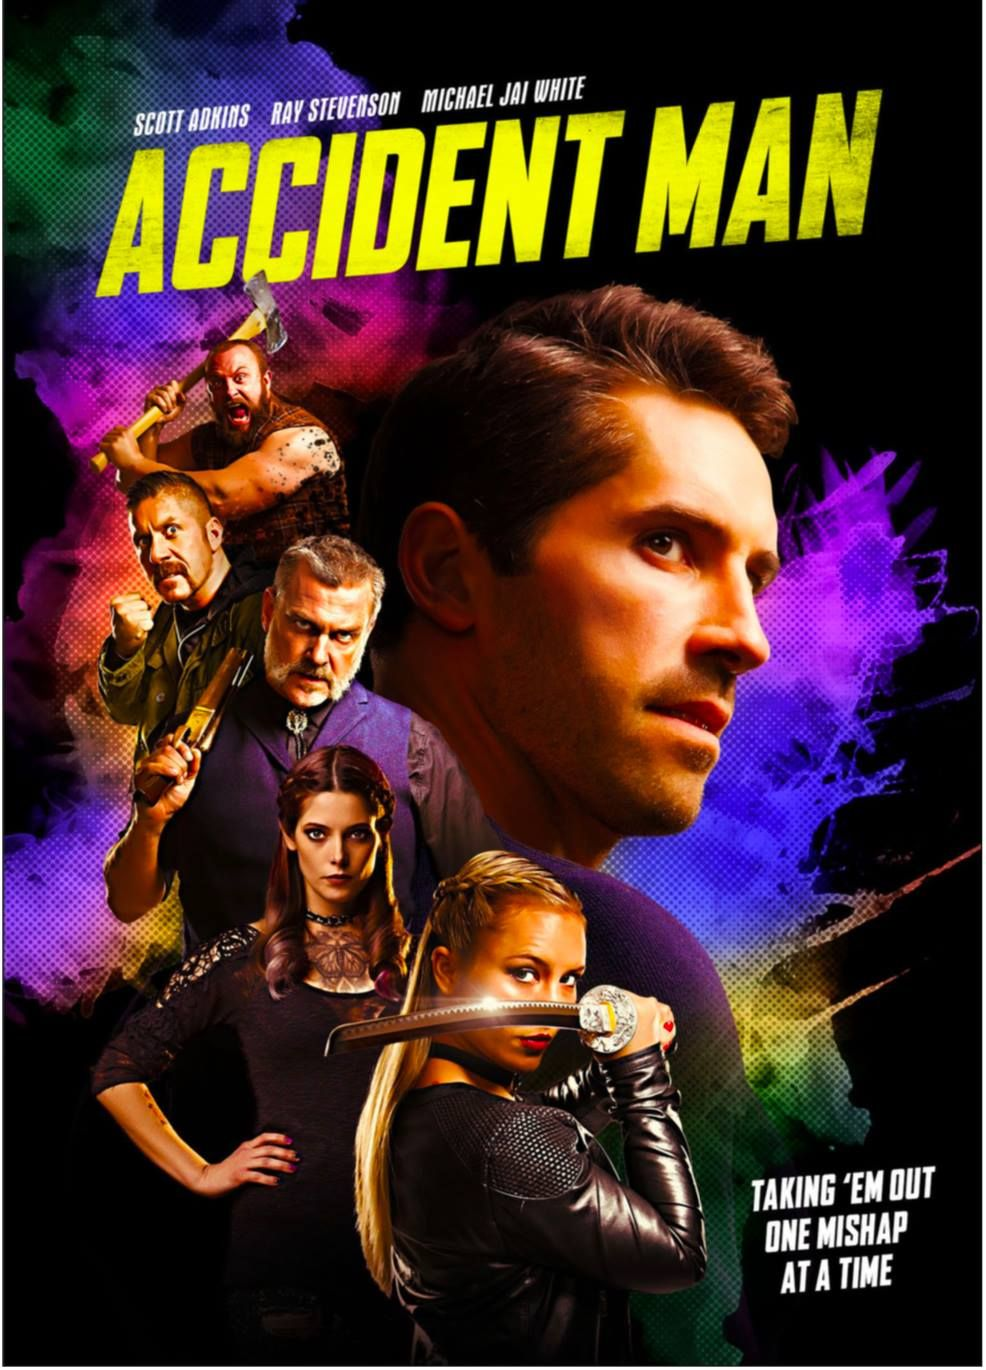 M.A.A.C. SCOTT ADKINS To Star In The LiveAction